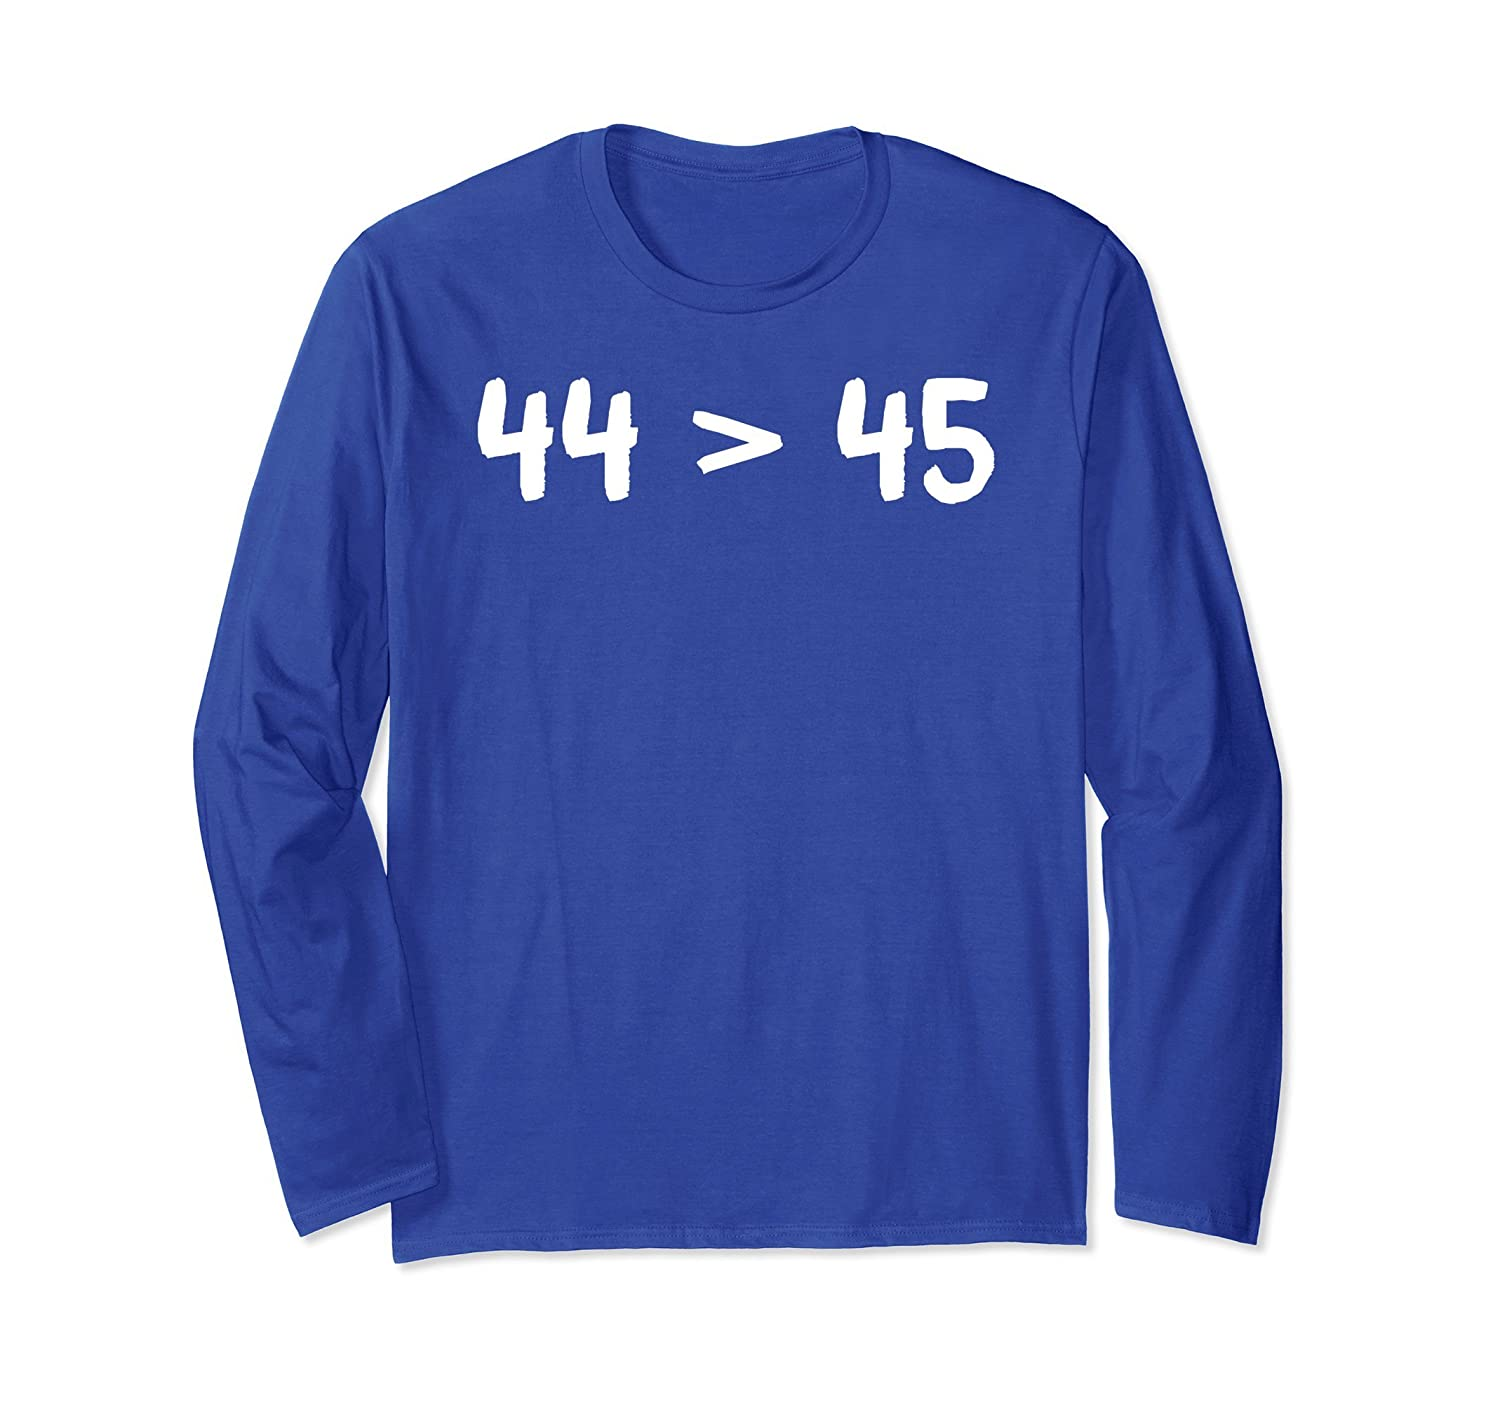 44 > 45   The 44th President is Greater than the 45th-ln